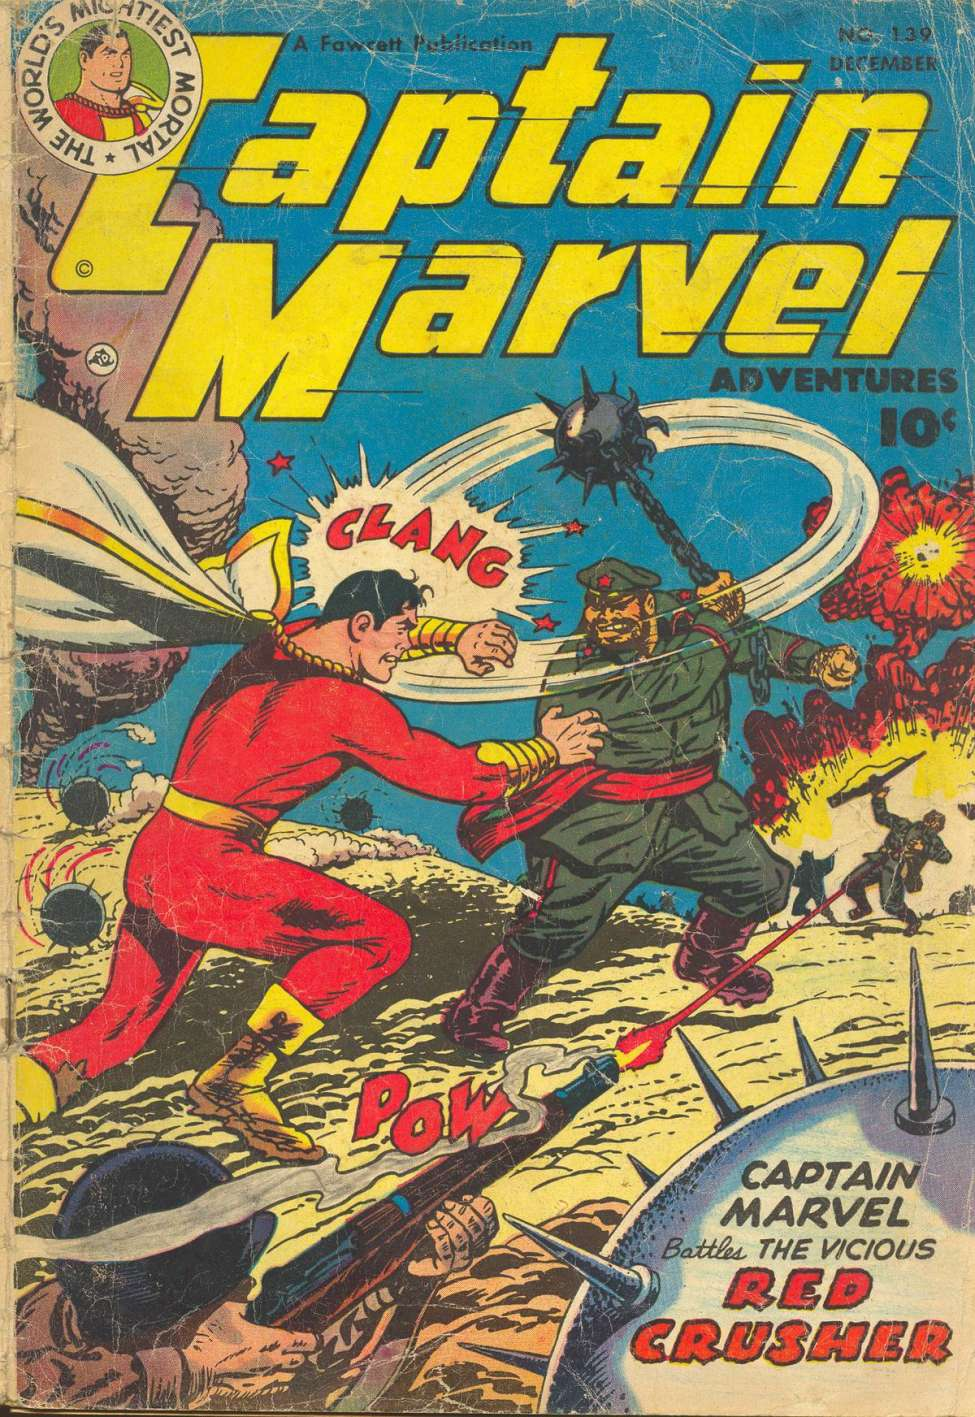 Comic Book Cover For Captain Marvel Adventures #139